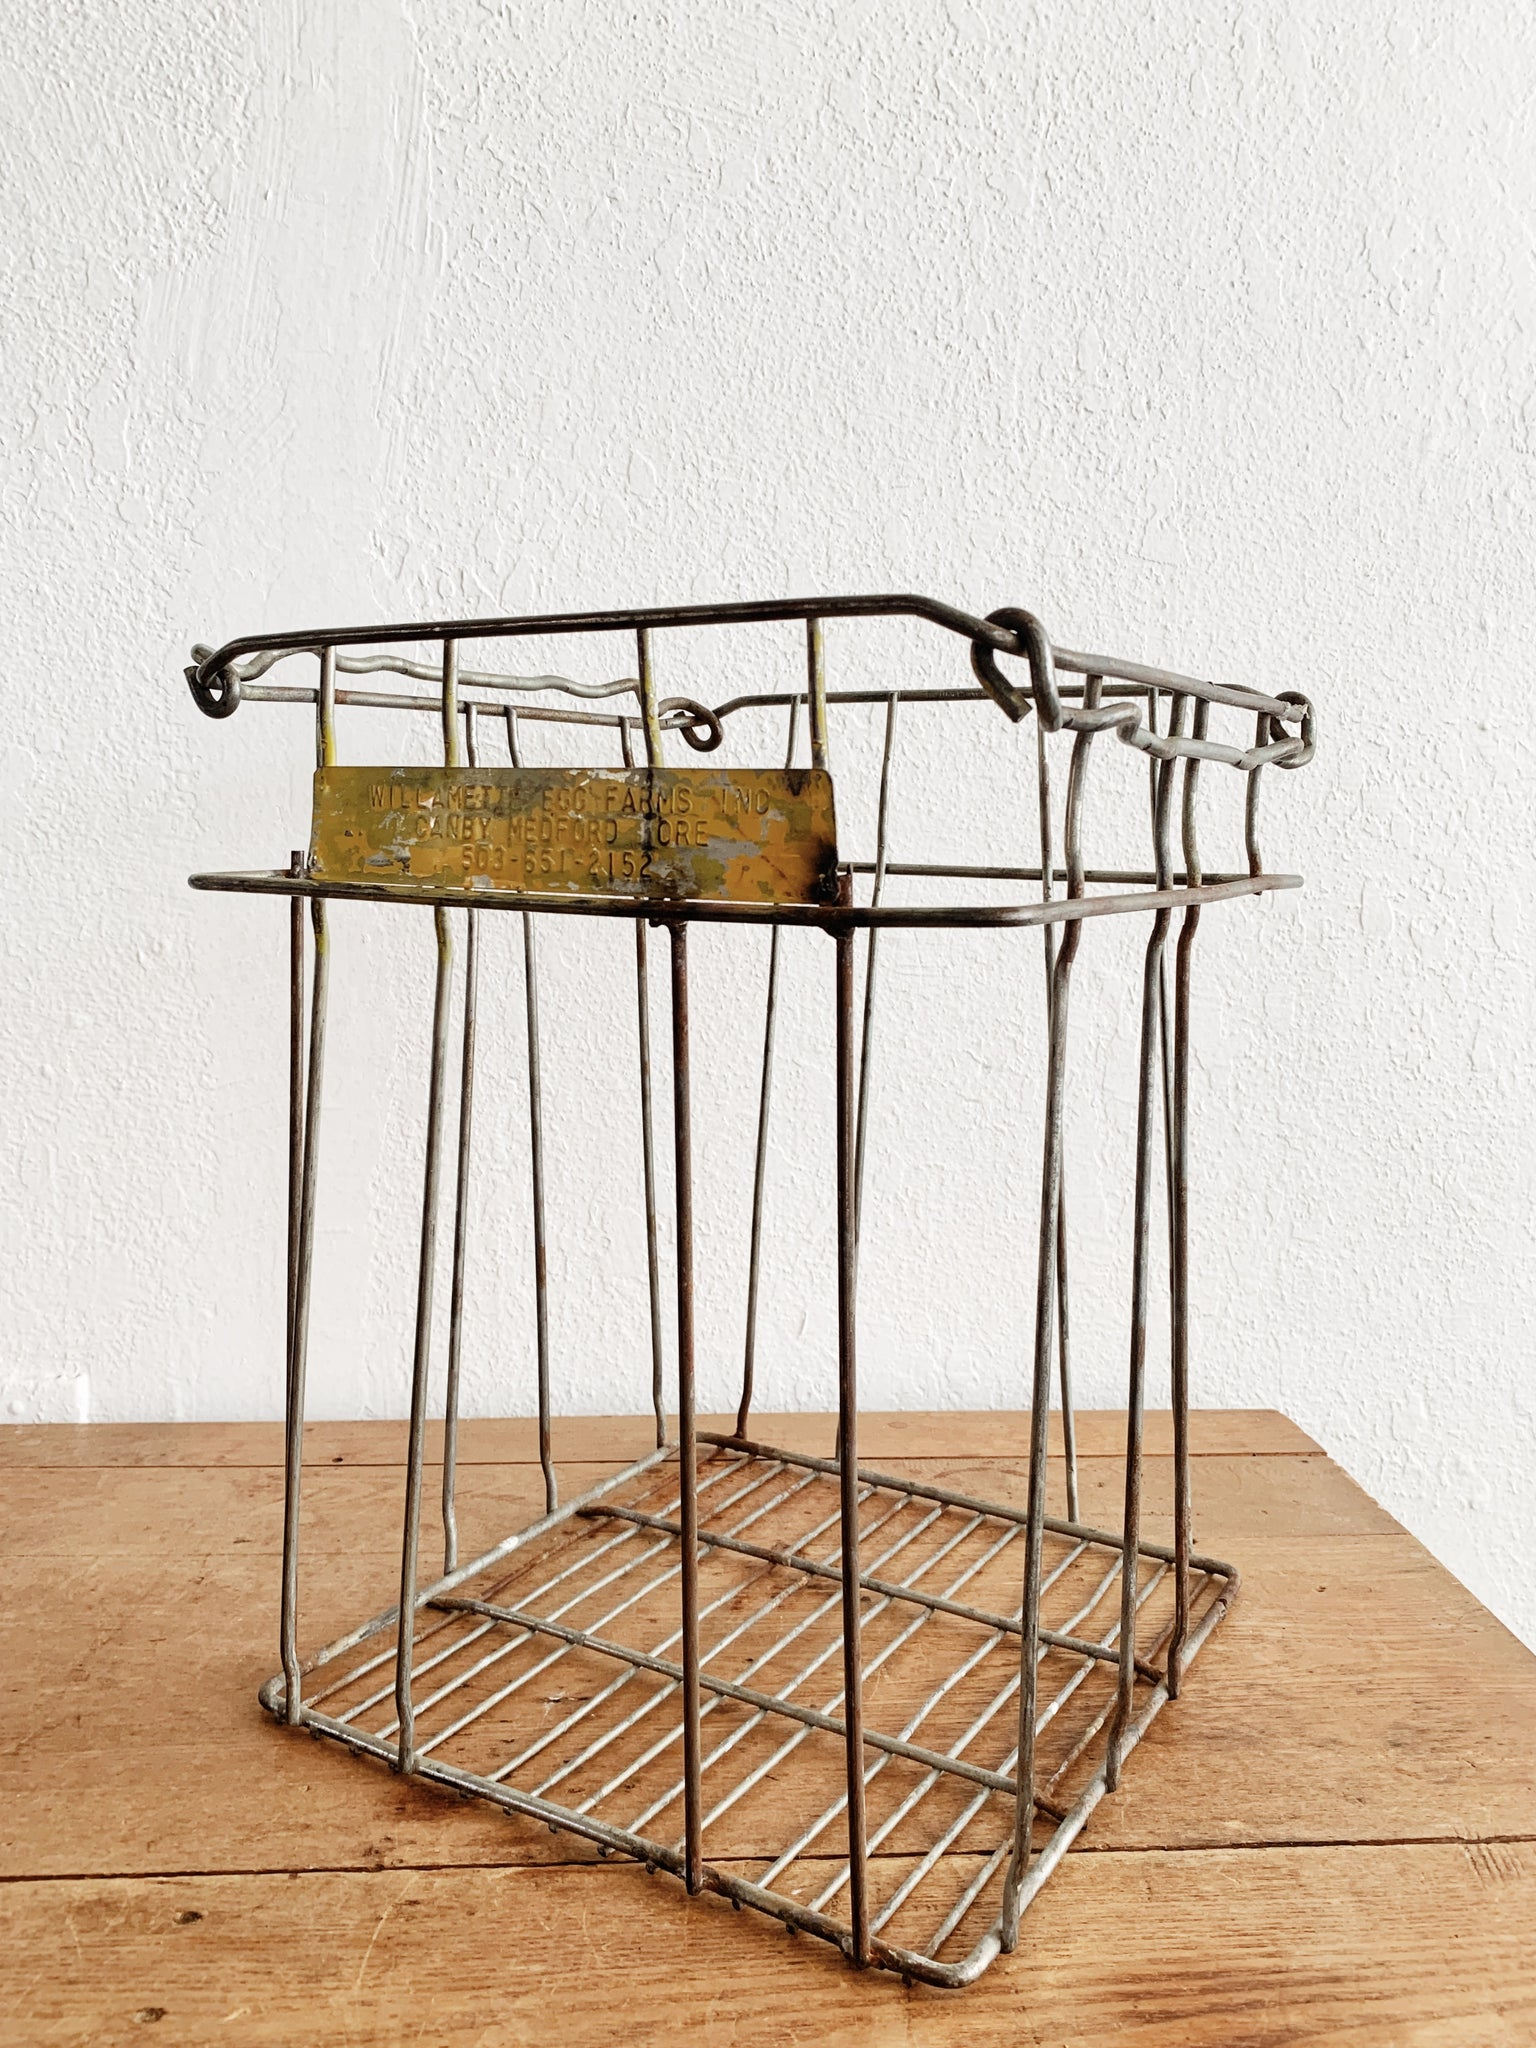 Vintage Metal Egg Crate /Industrial Stand